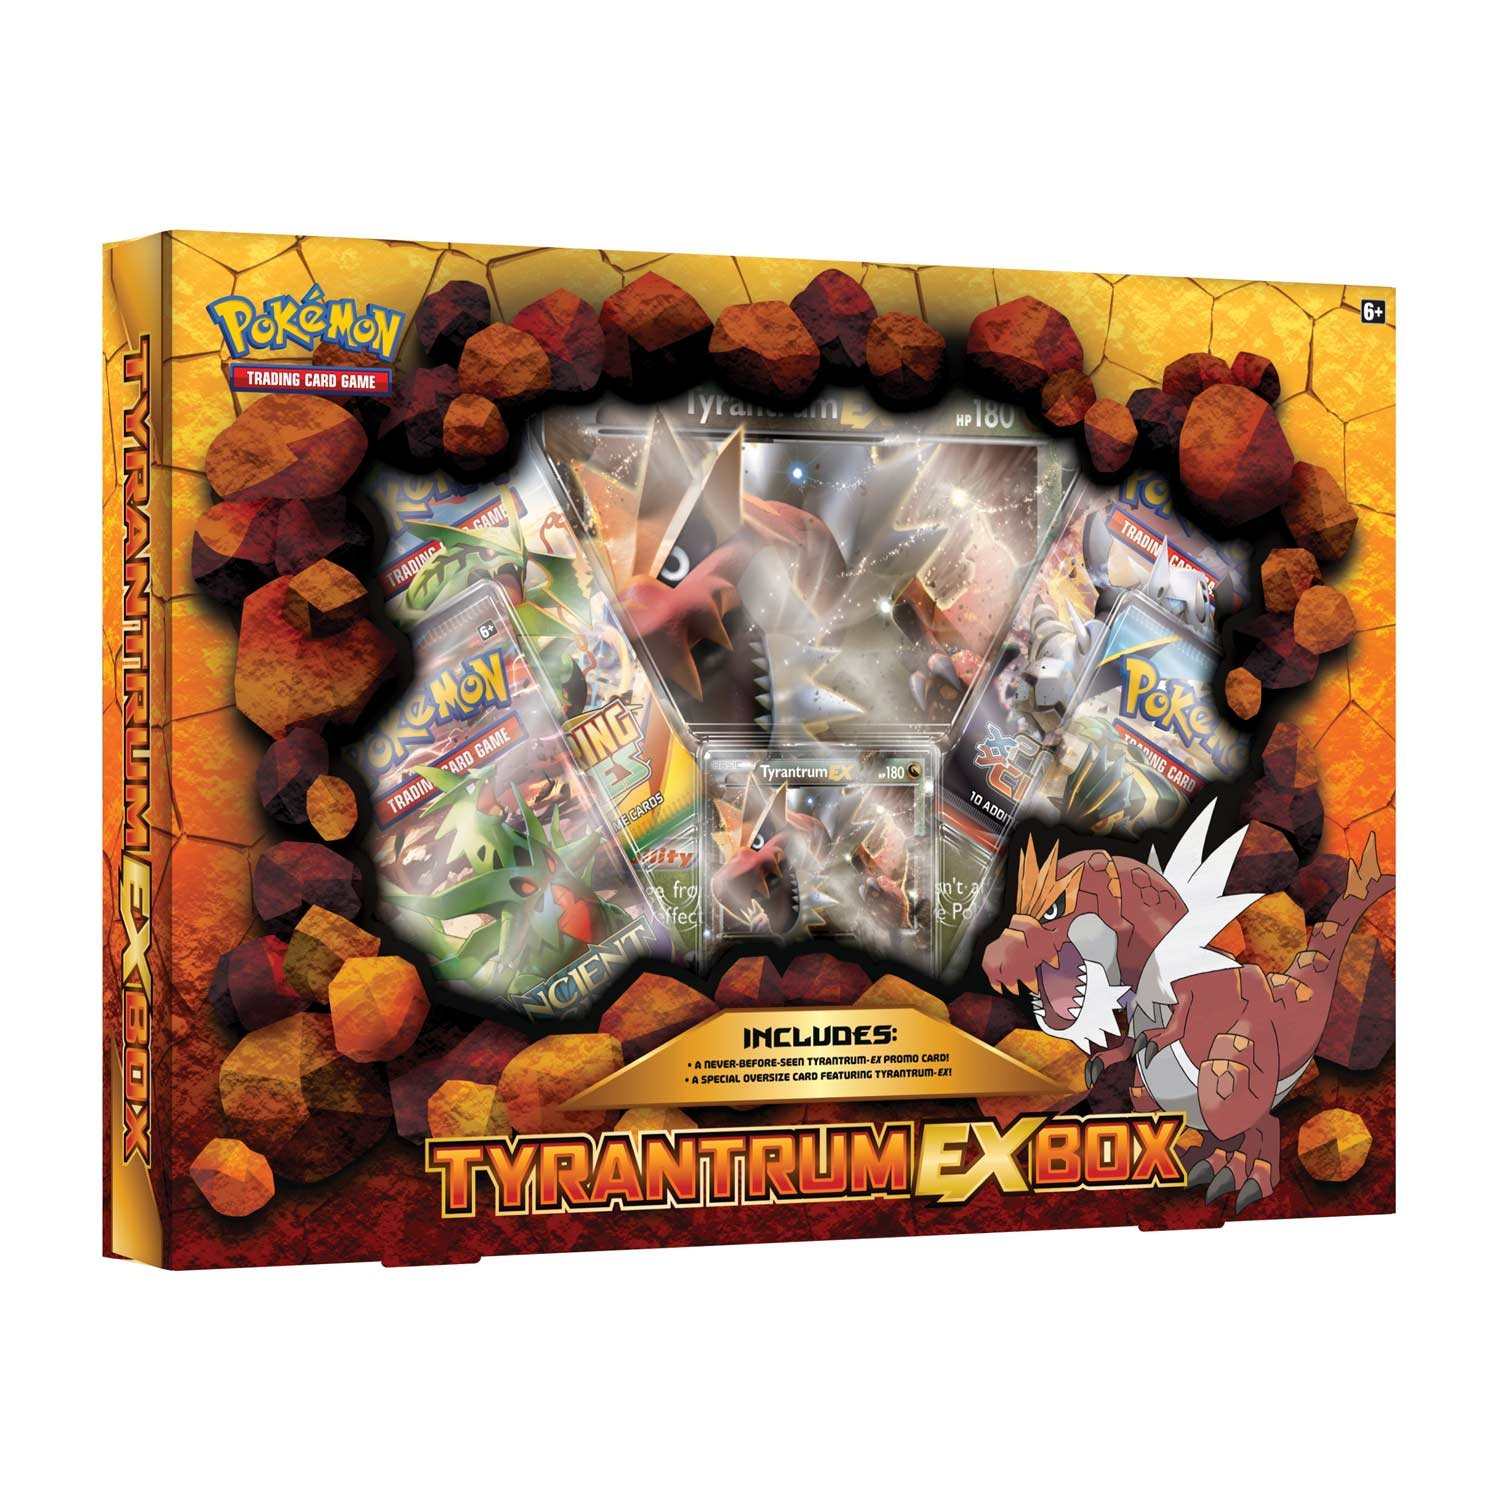 Pokèmon tyrantrum EX Box Juego de Cartas: Amazon.es ...